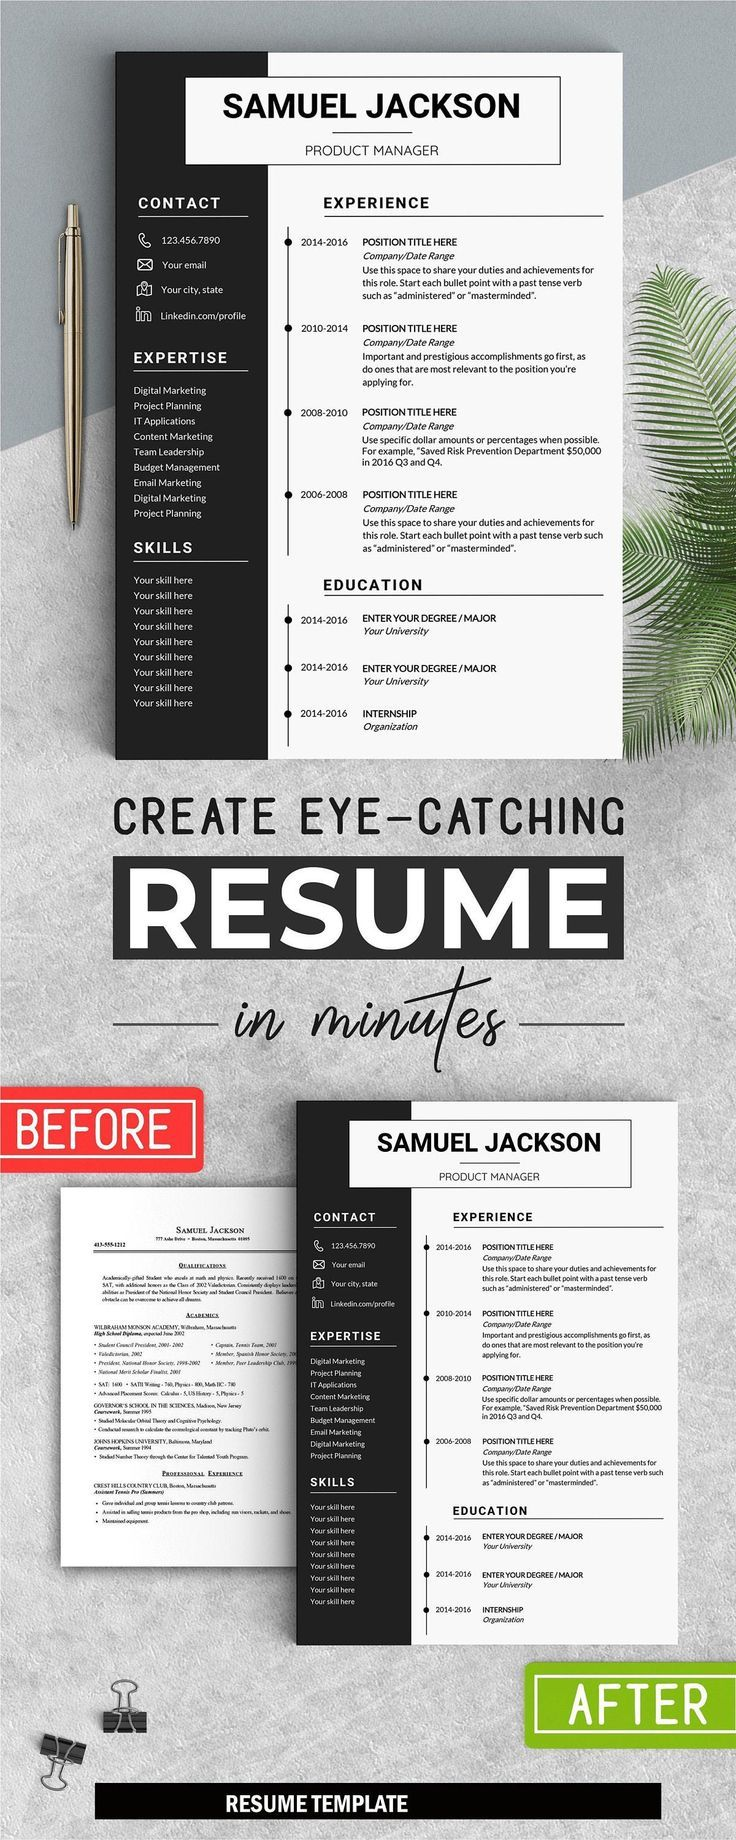 Professional Resume Instant Download CV WORD Cover letter 1 page resume Cover letter Editable i